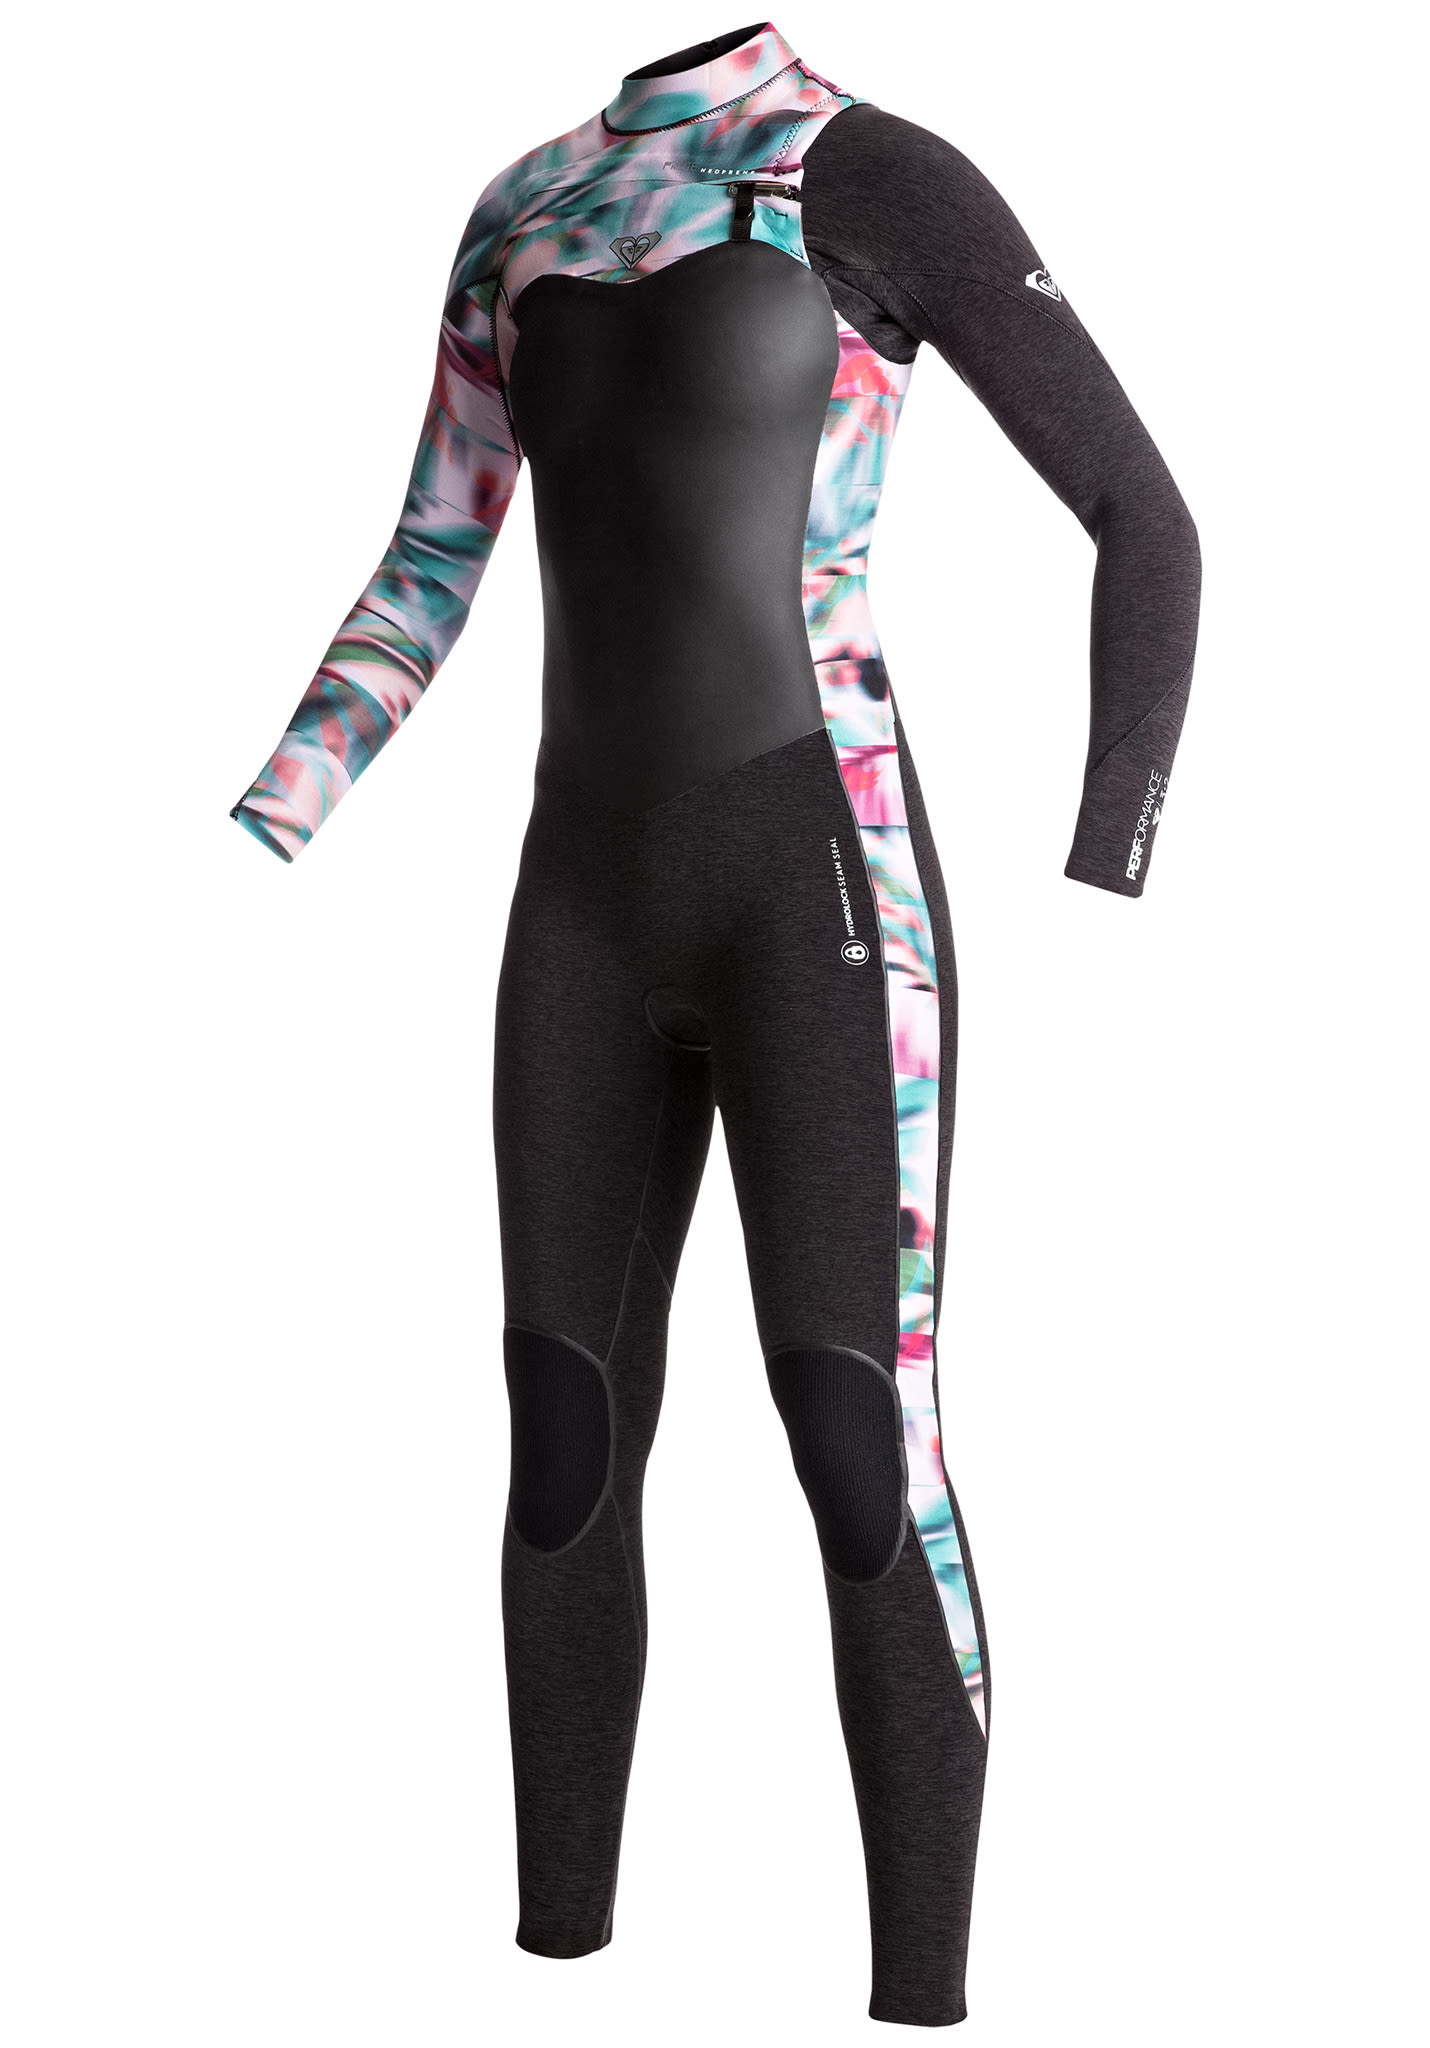 aeb0f48015 Roxy Performance 3 2mm Chest Zip - Wetsuit for Women - Black - Planet Sports